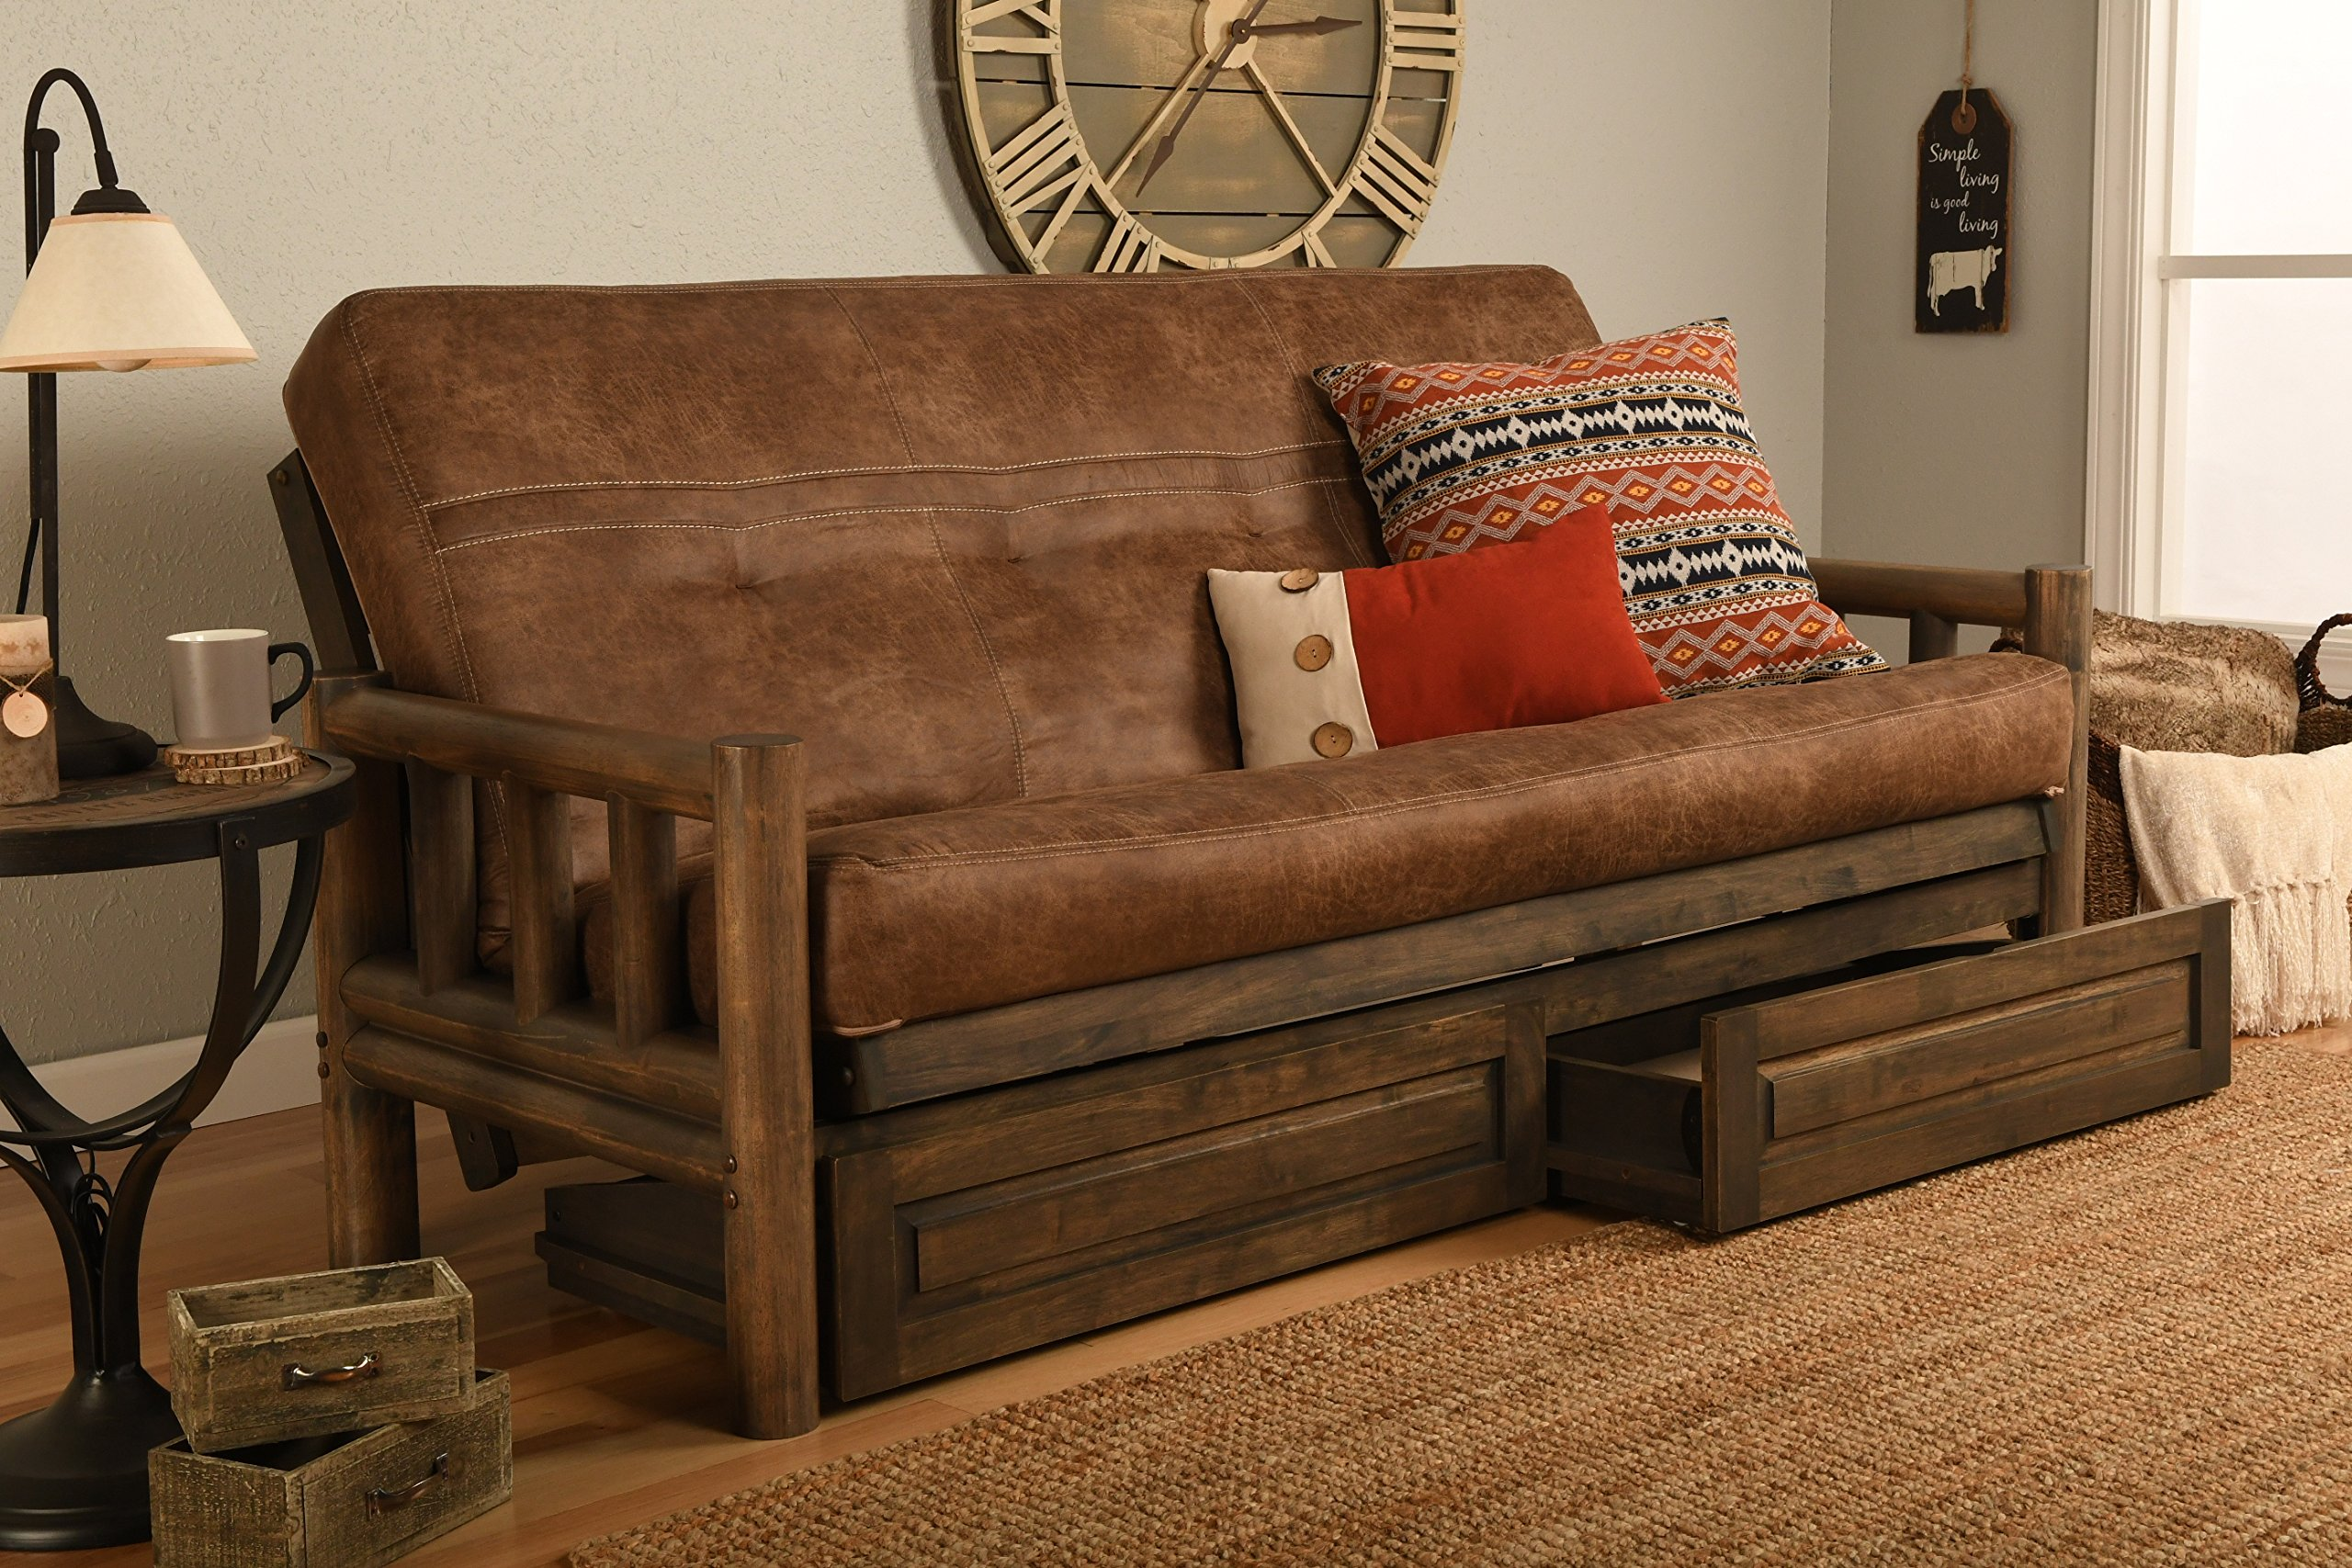 Rustic Lodge Wood ''Frame, Drawers and Mattress'' 8 Inch Innerspring Mattress Futon Set by Jerry Sales (Palance Silt Fabric)